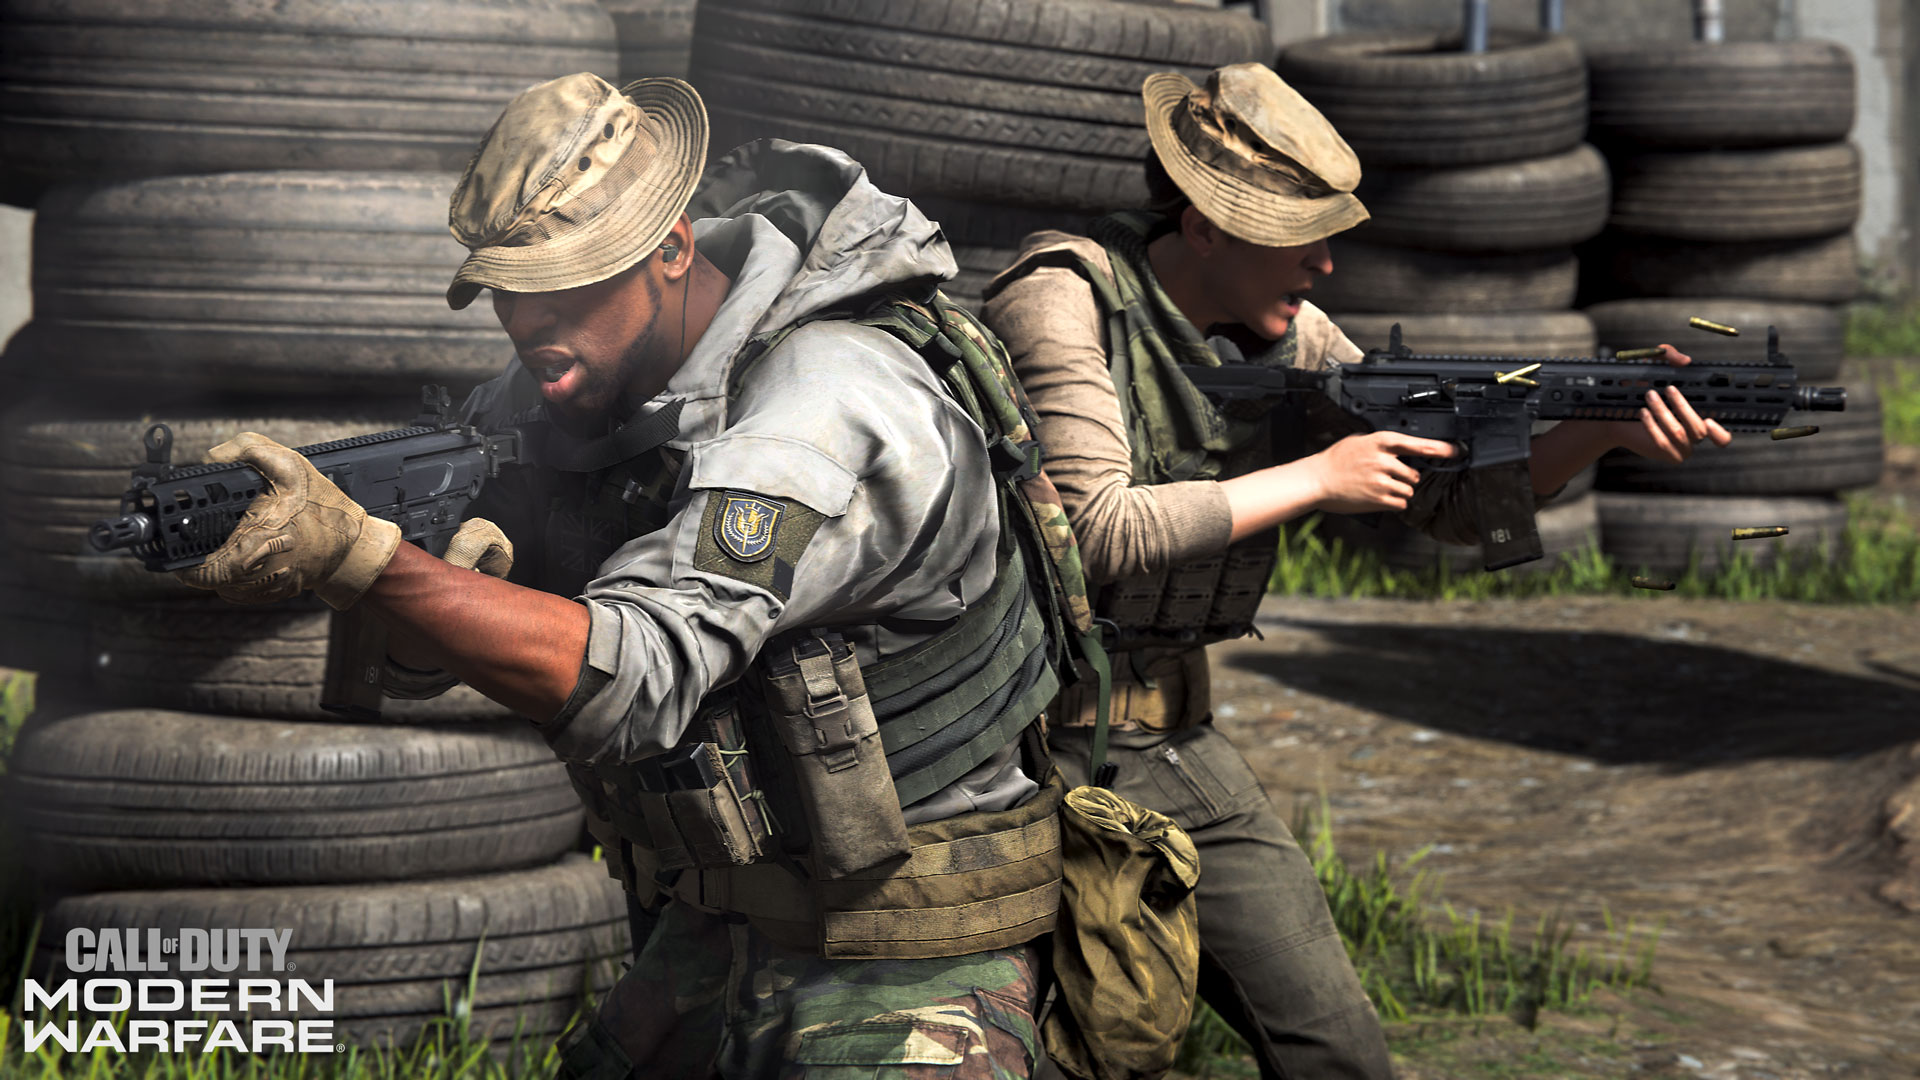 Call of Duty: Modern Warfare Alpha Pre-Load Available on PS4, Play This Weekend